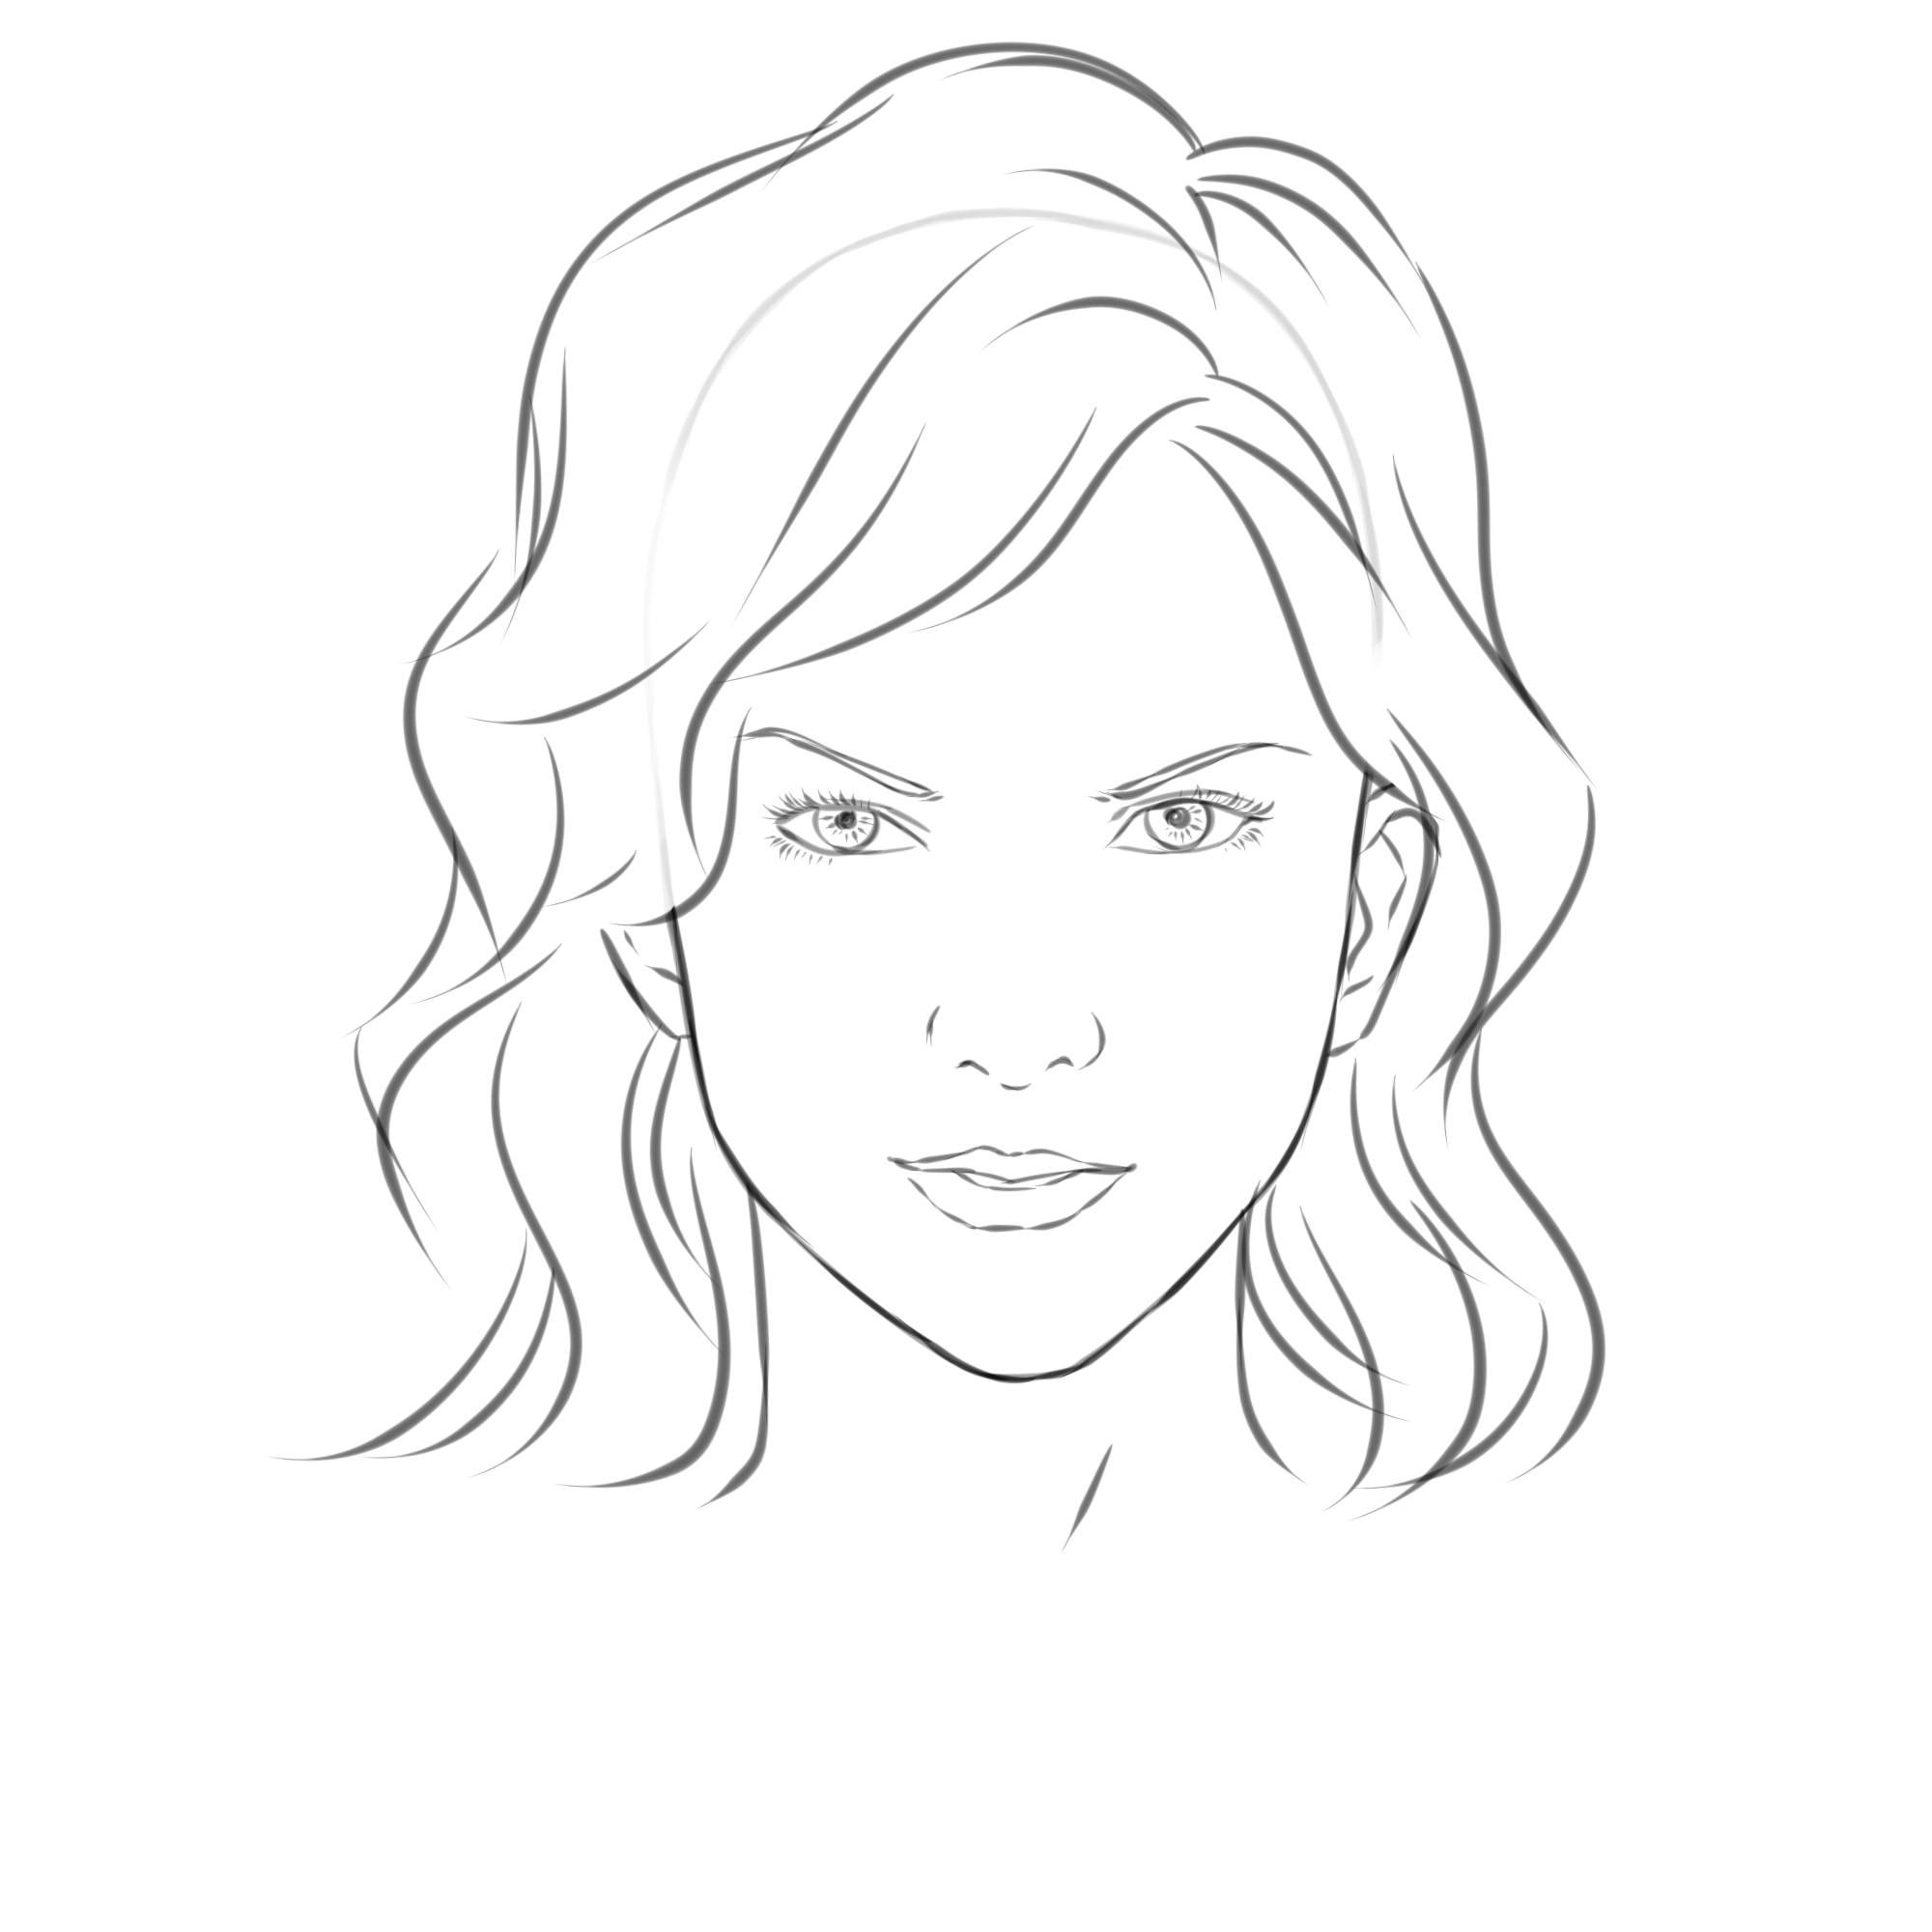 Girl Nose Drawing At Getdrawings Com Free For Personal Use